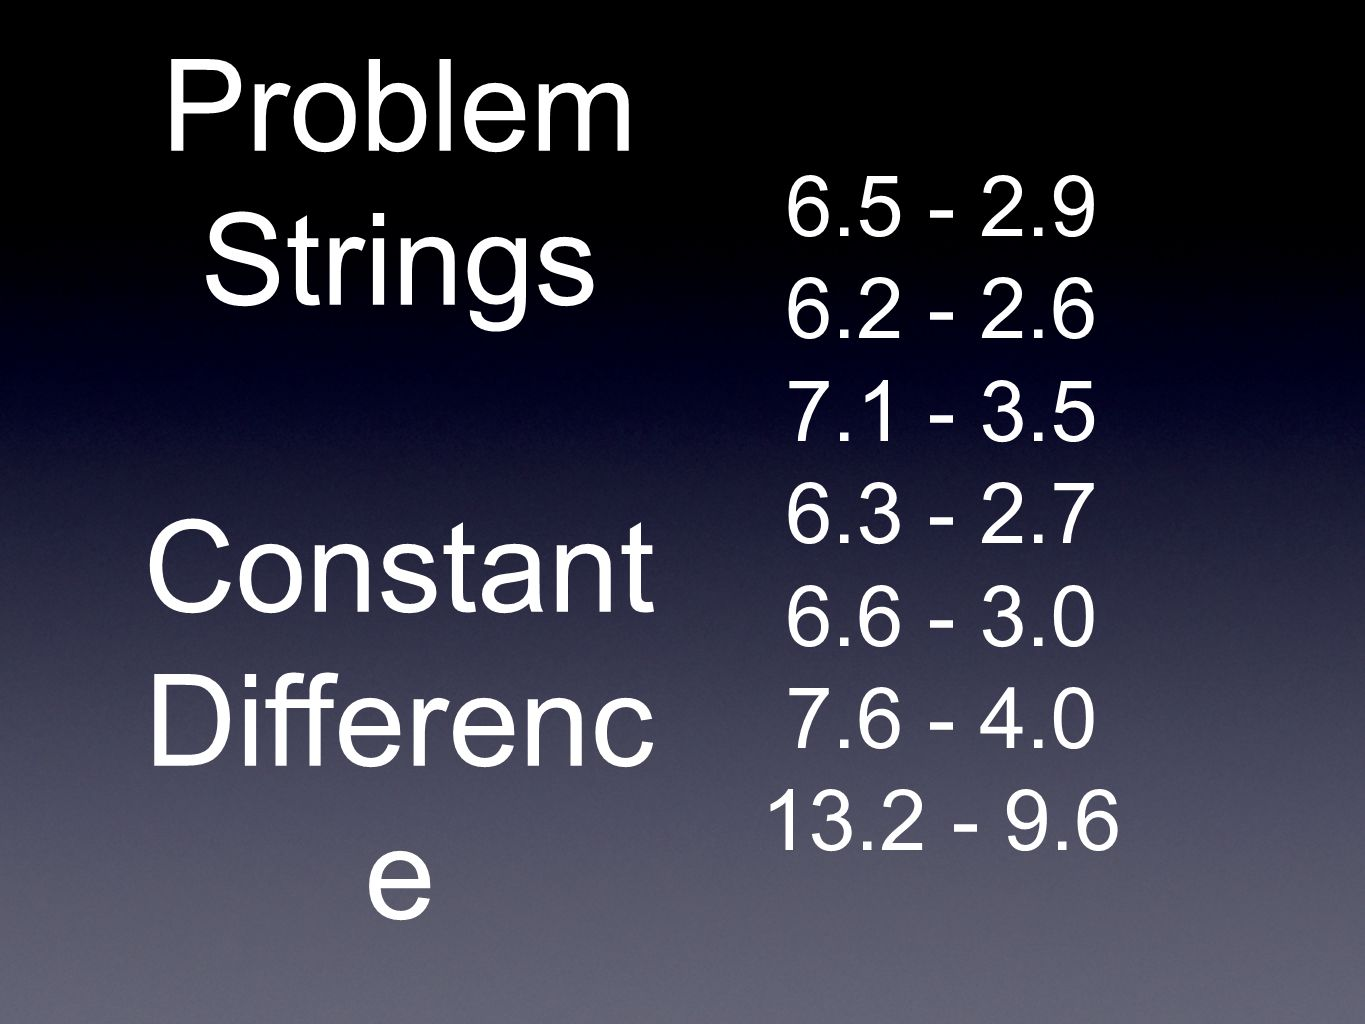 6.5 - 2.9 6.2 - 2.6 7.1 - 3.5 6.3 - 2.7 6.6 - 3.0 7.6 - 4.0 13.2 - 9.6 Problem Strings Constant Differenc e